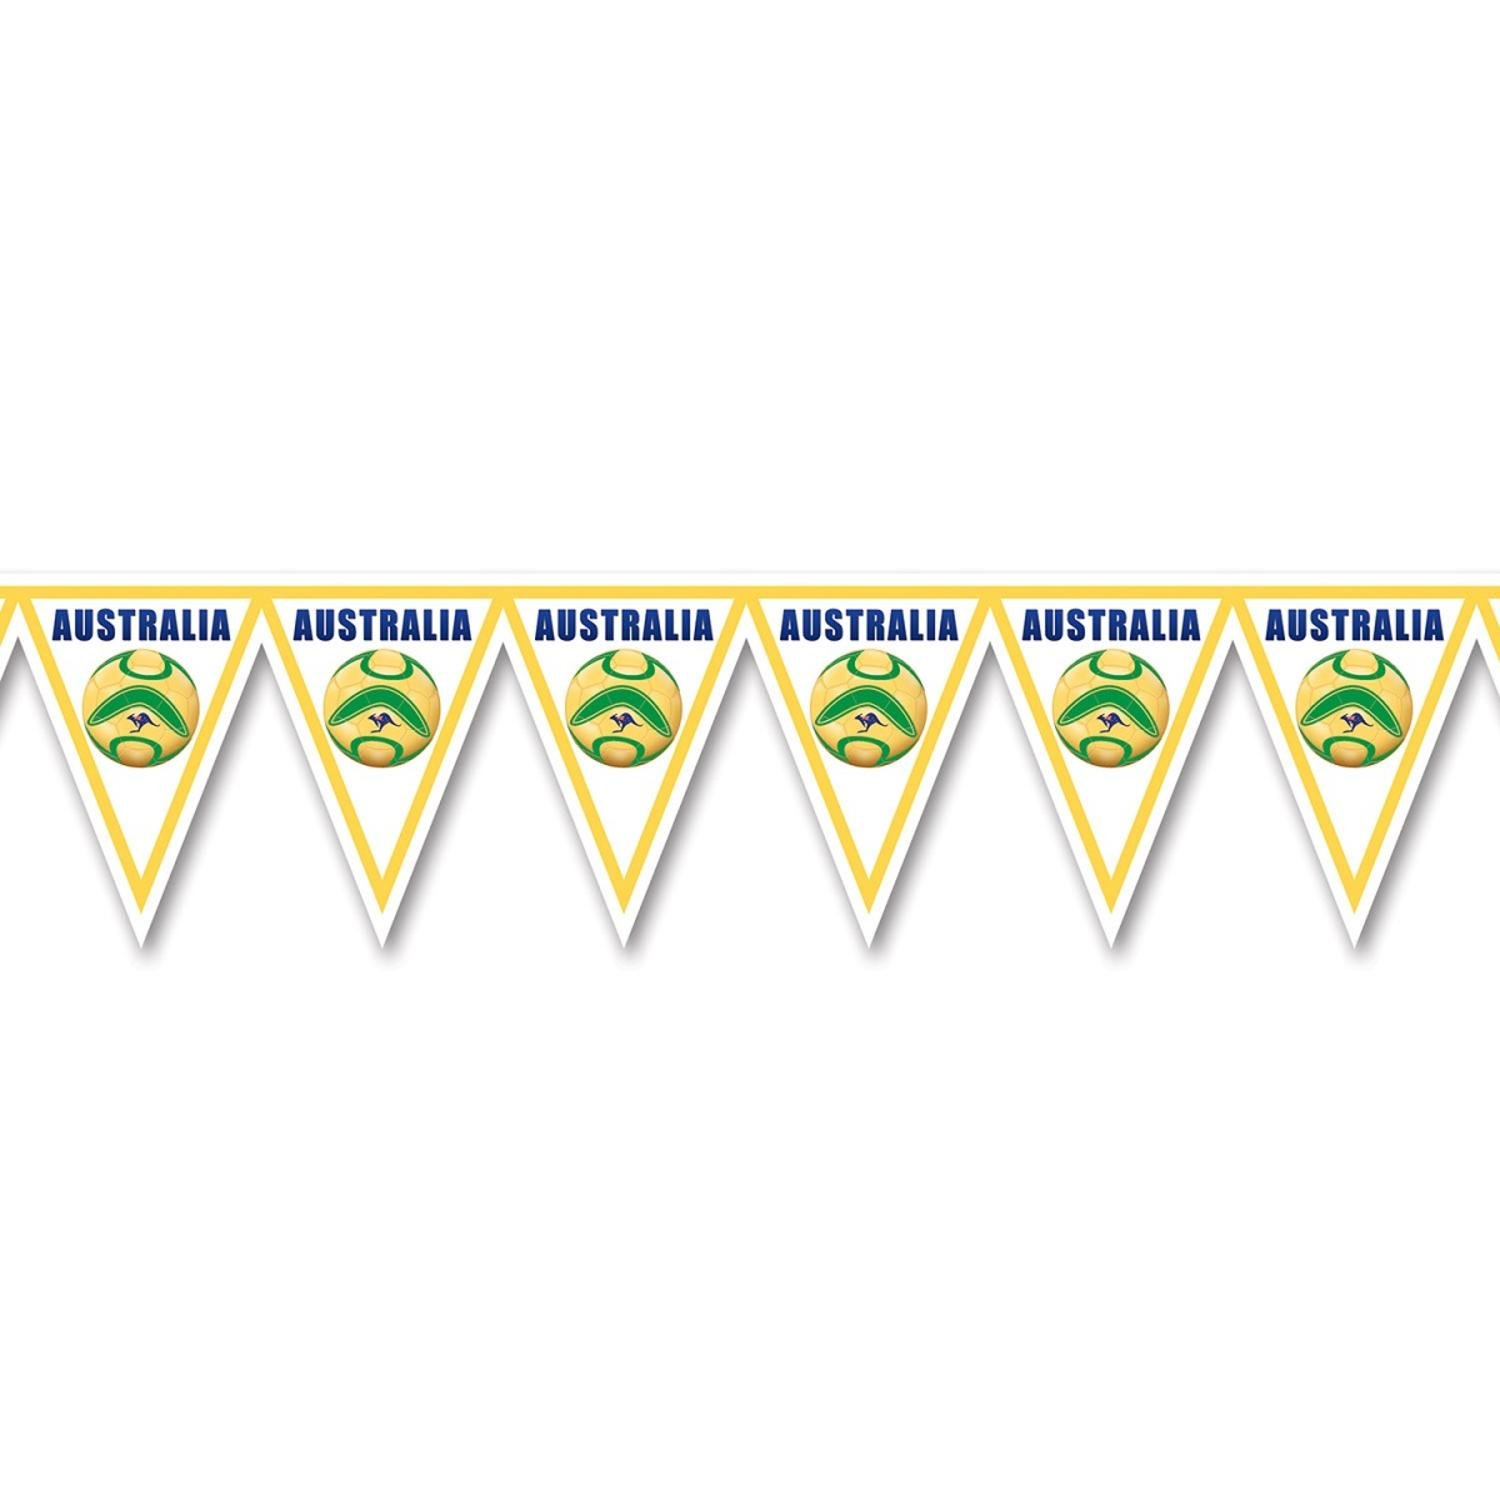 Pack of 6 Green, Yellow and White ''Australia'' Soccer Themed Pennant Banner Party Decorations 7.4'